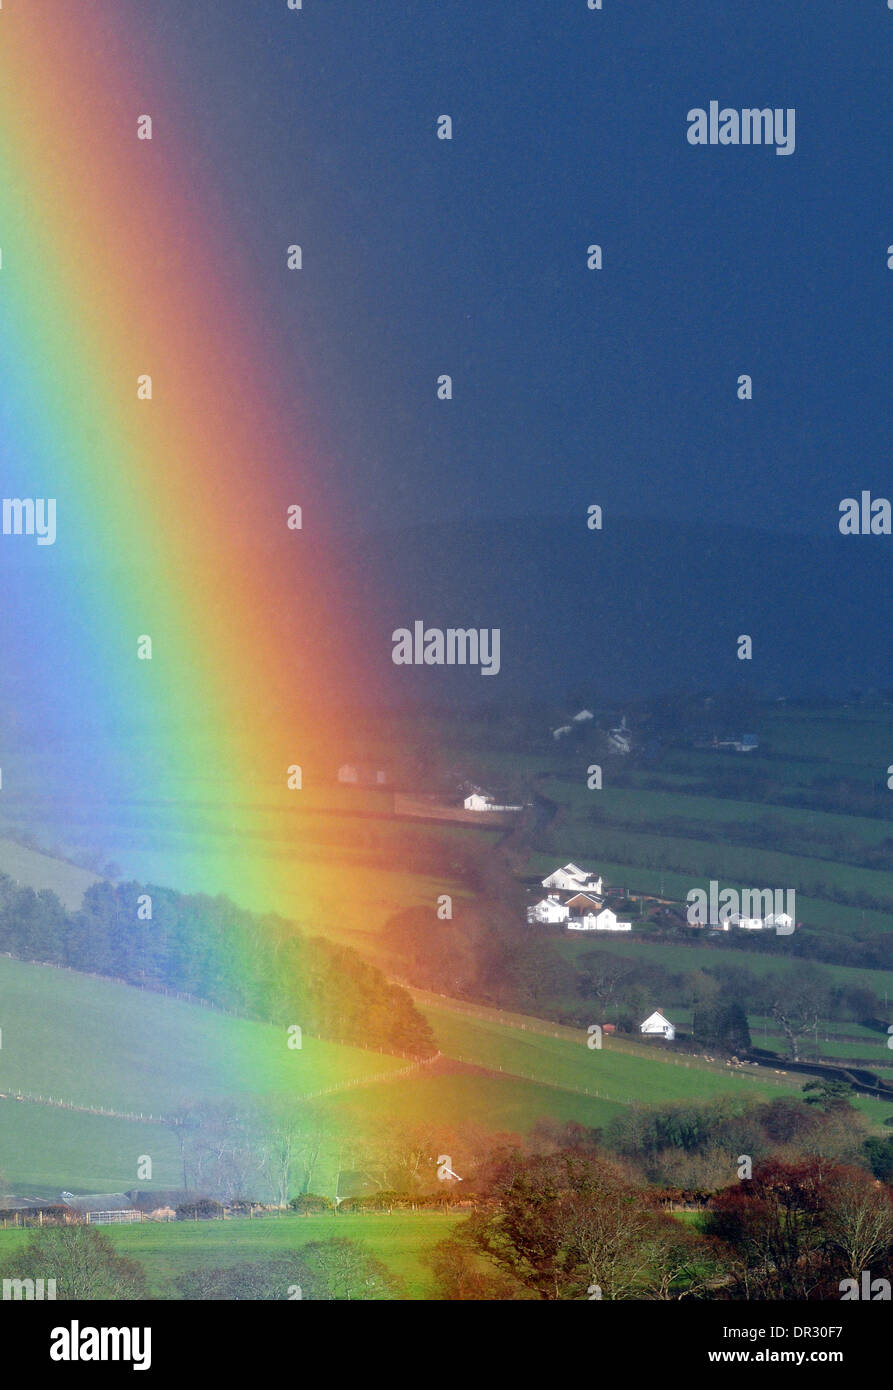 Aberystwyth, Wales, UK. 18th Jan, 2014.  For the second time in two days, a rainbow crosses the view of the Cambrian Mountains behind Capel Dewi, Aberystwyth, Wales, UK as showers sweep across the valley - 18 Jan 2014. Credit:  John Gilbey/Alamy Live News - Stock Image